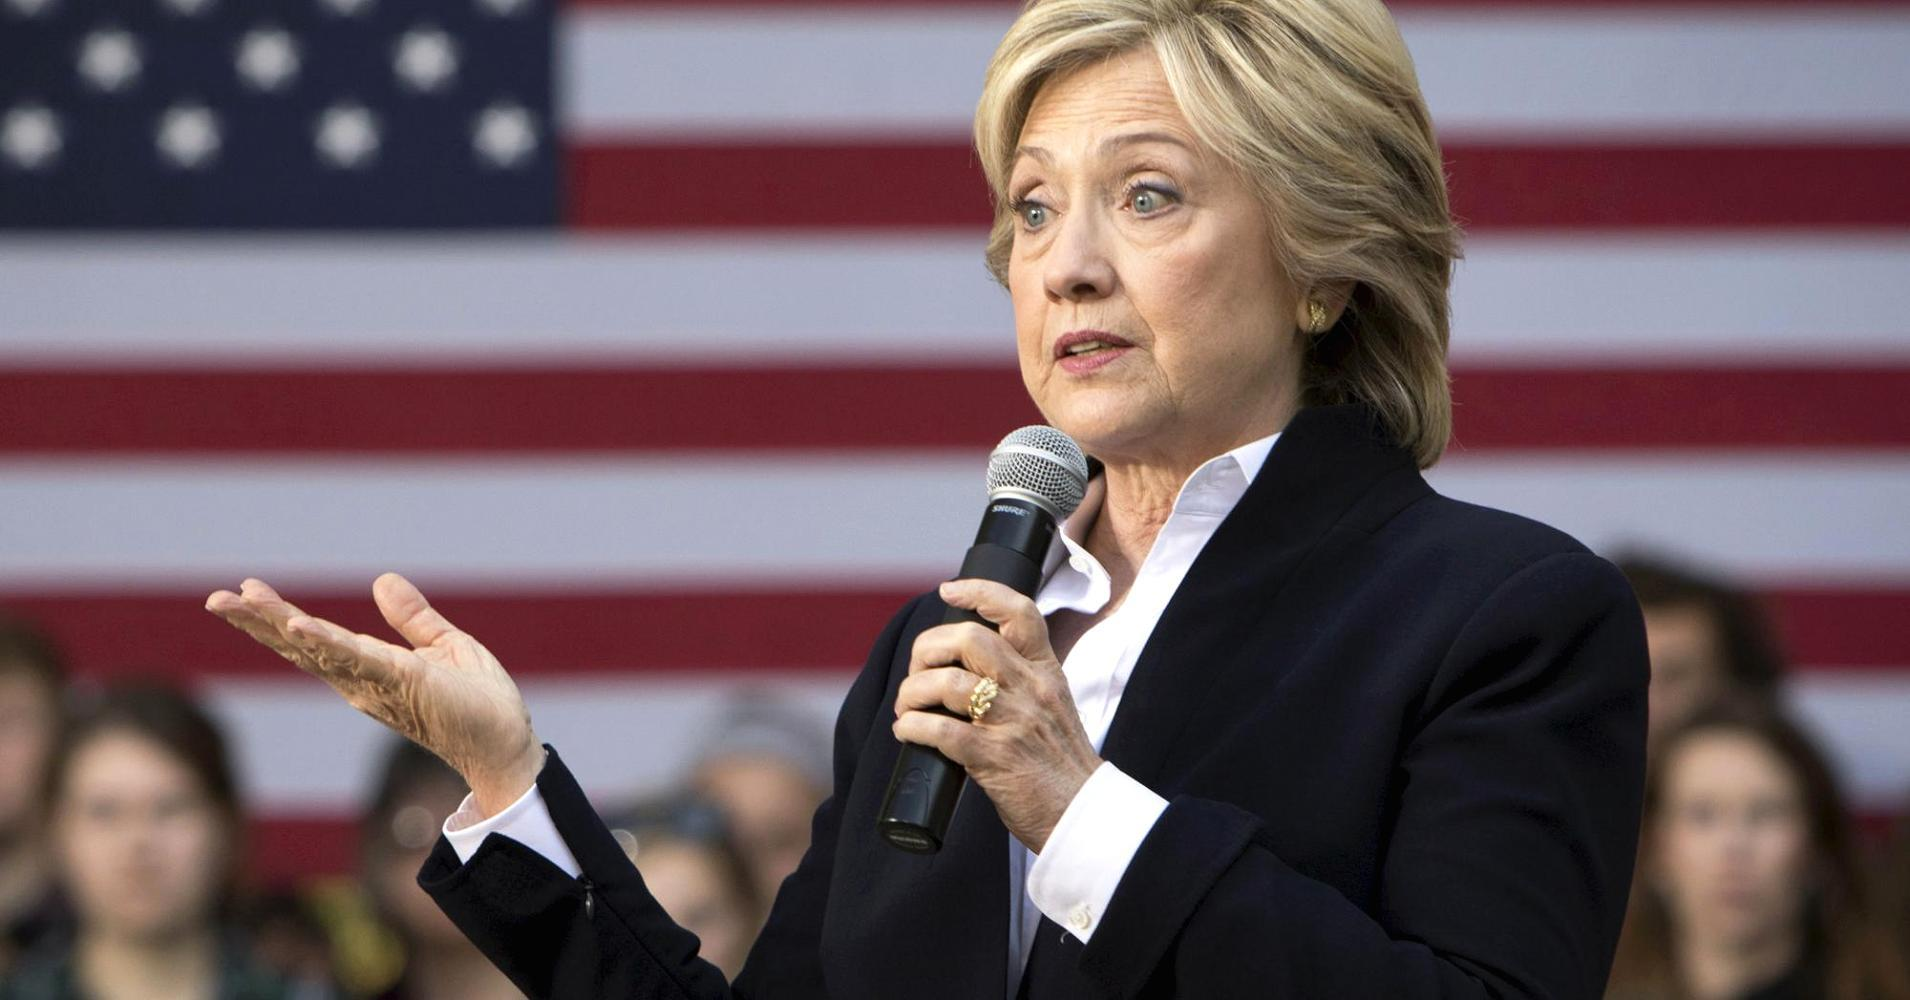 Clinton calls for breaking up too-big-to-fail banks